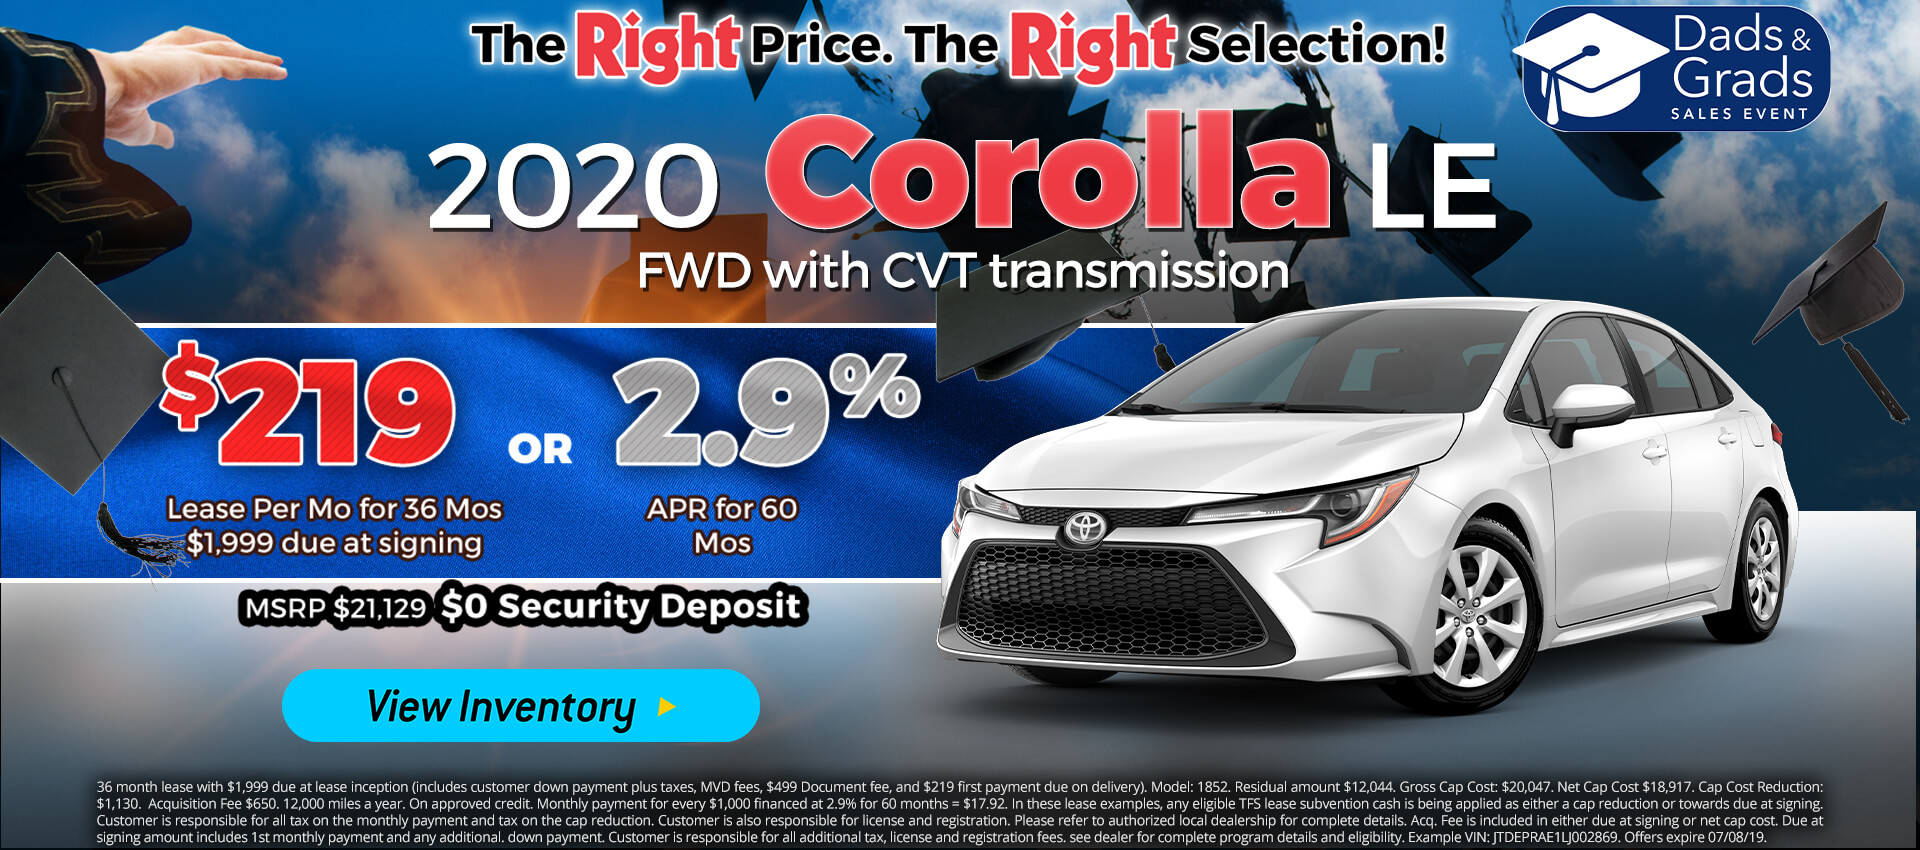 Corolla - Lease for $219